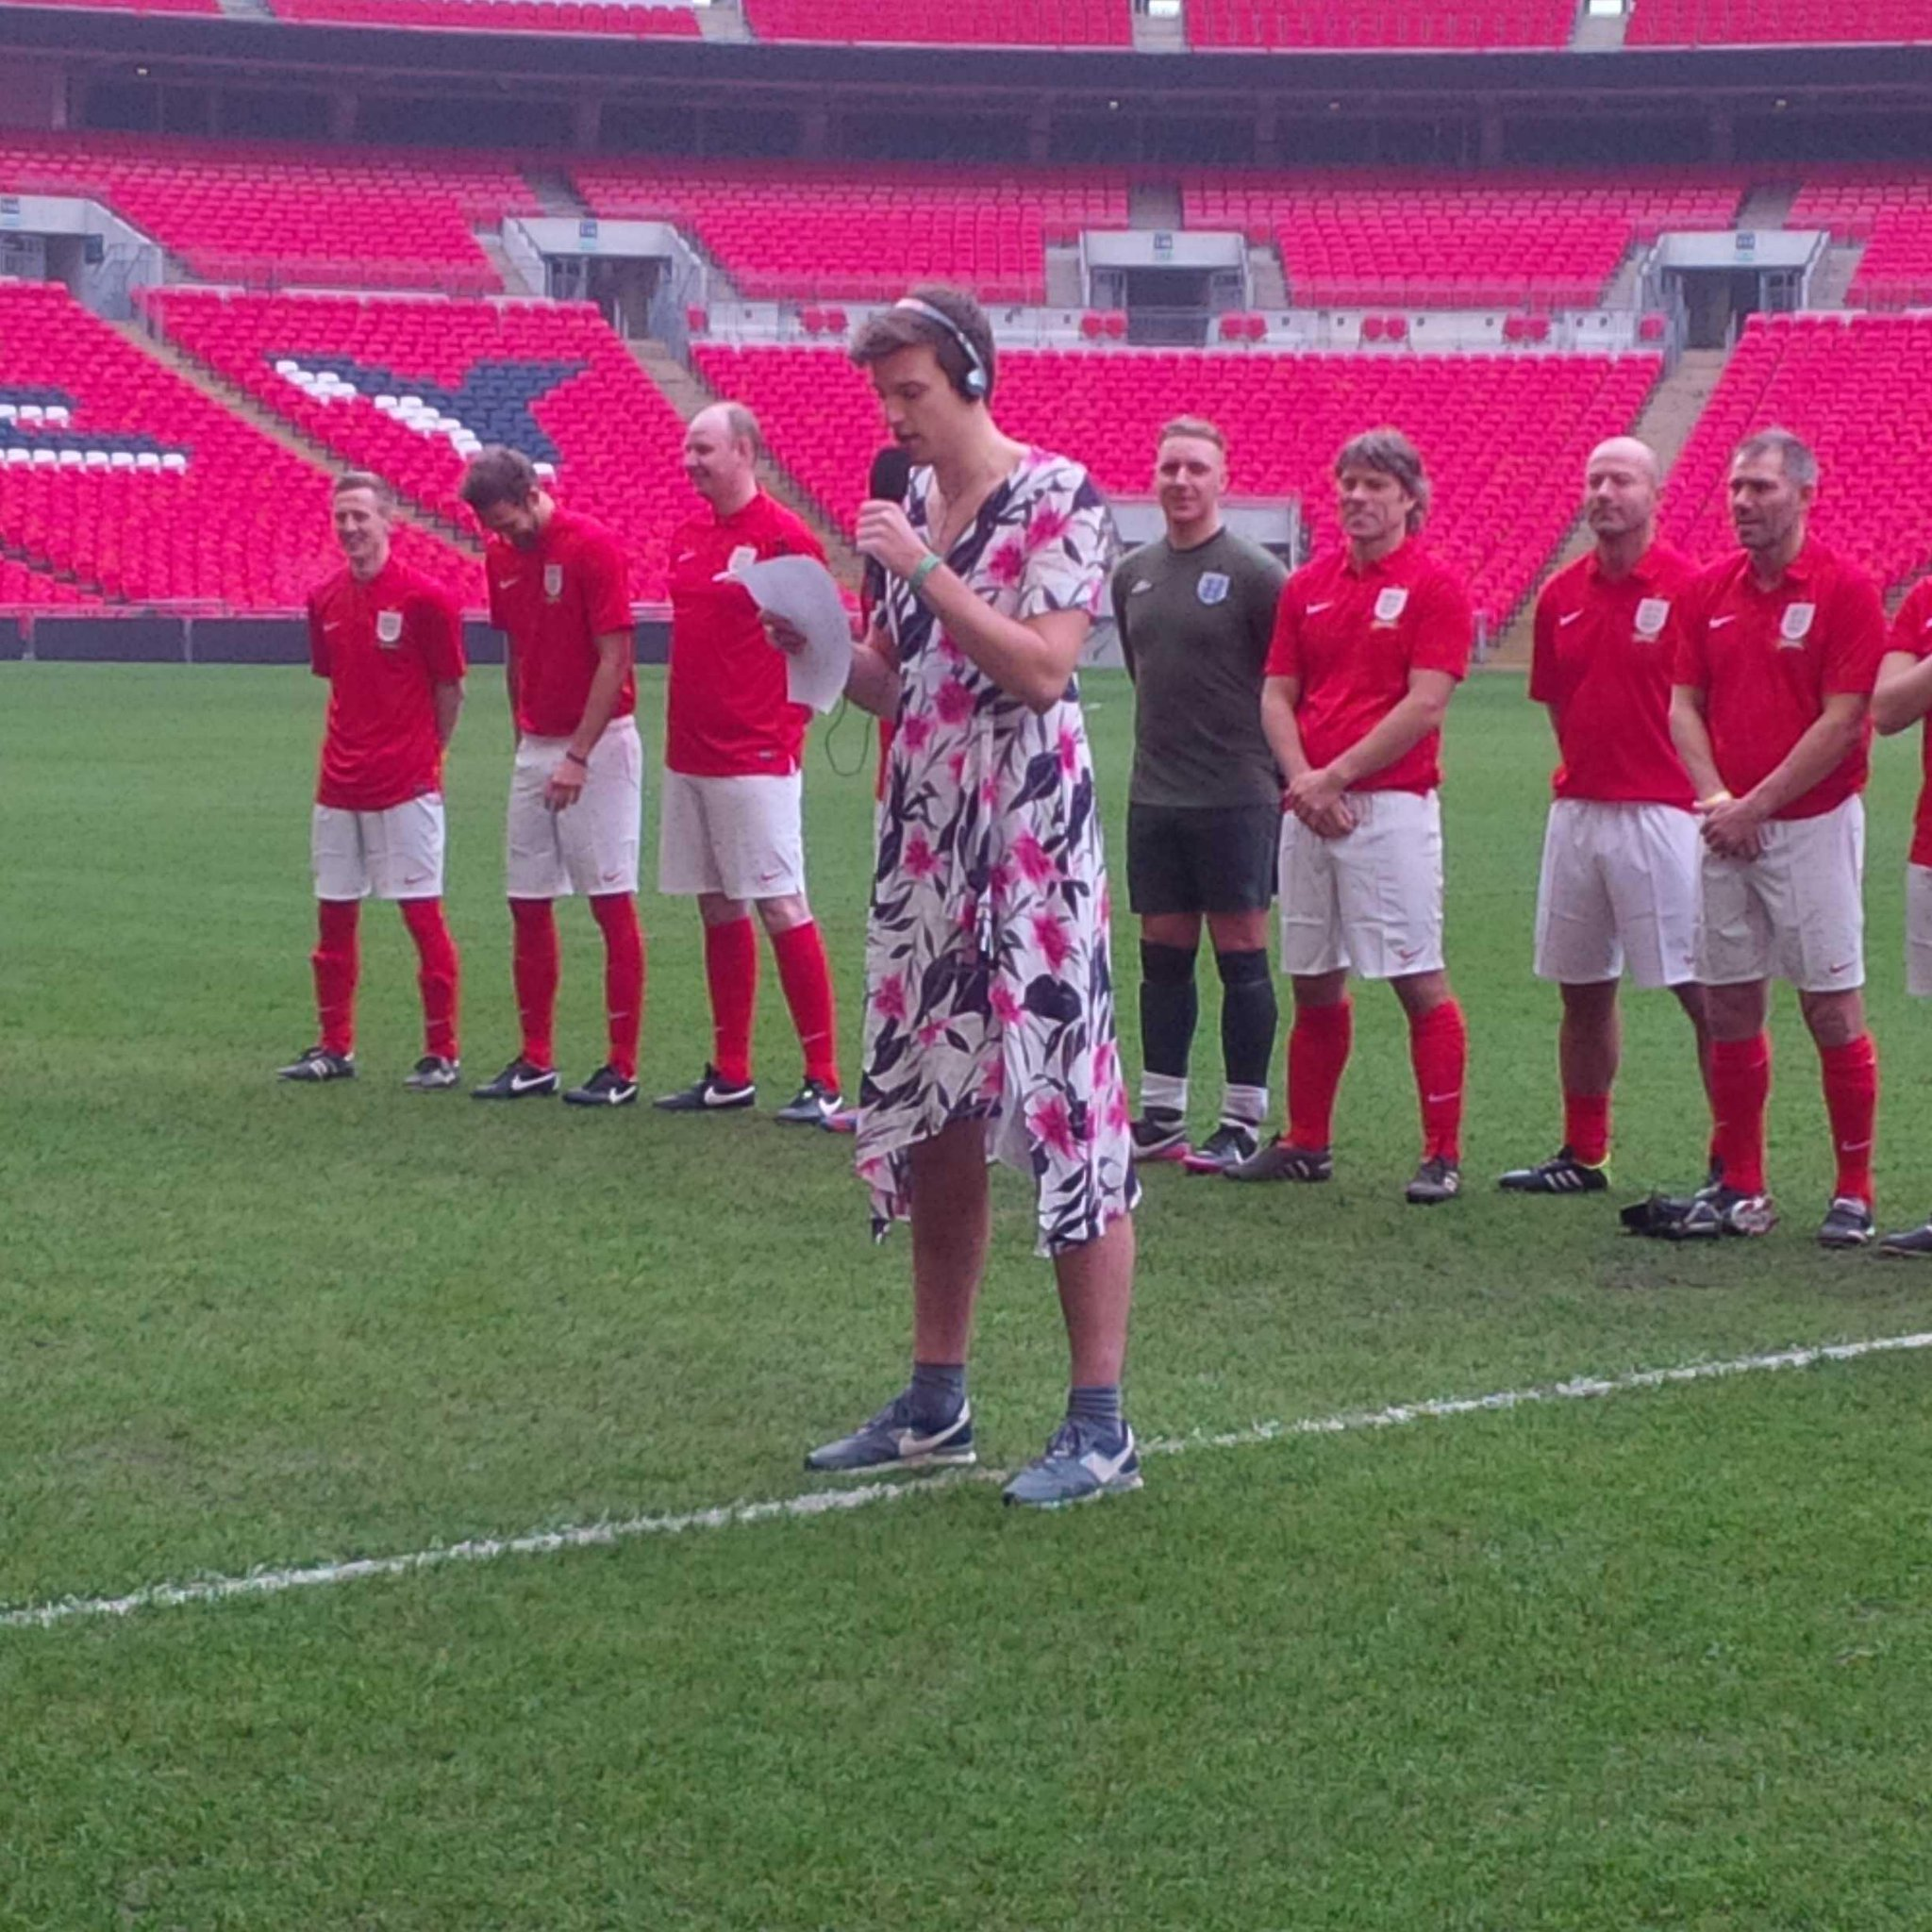 National Anthem being sung by @gregjames http://t.co/WhhHFA3RvW